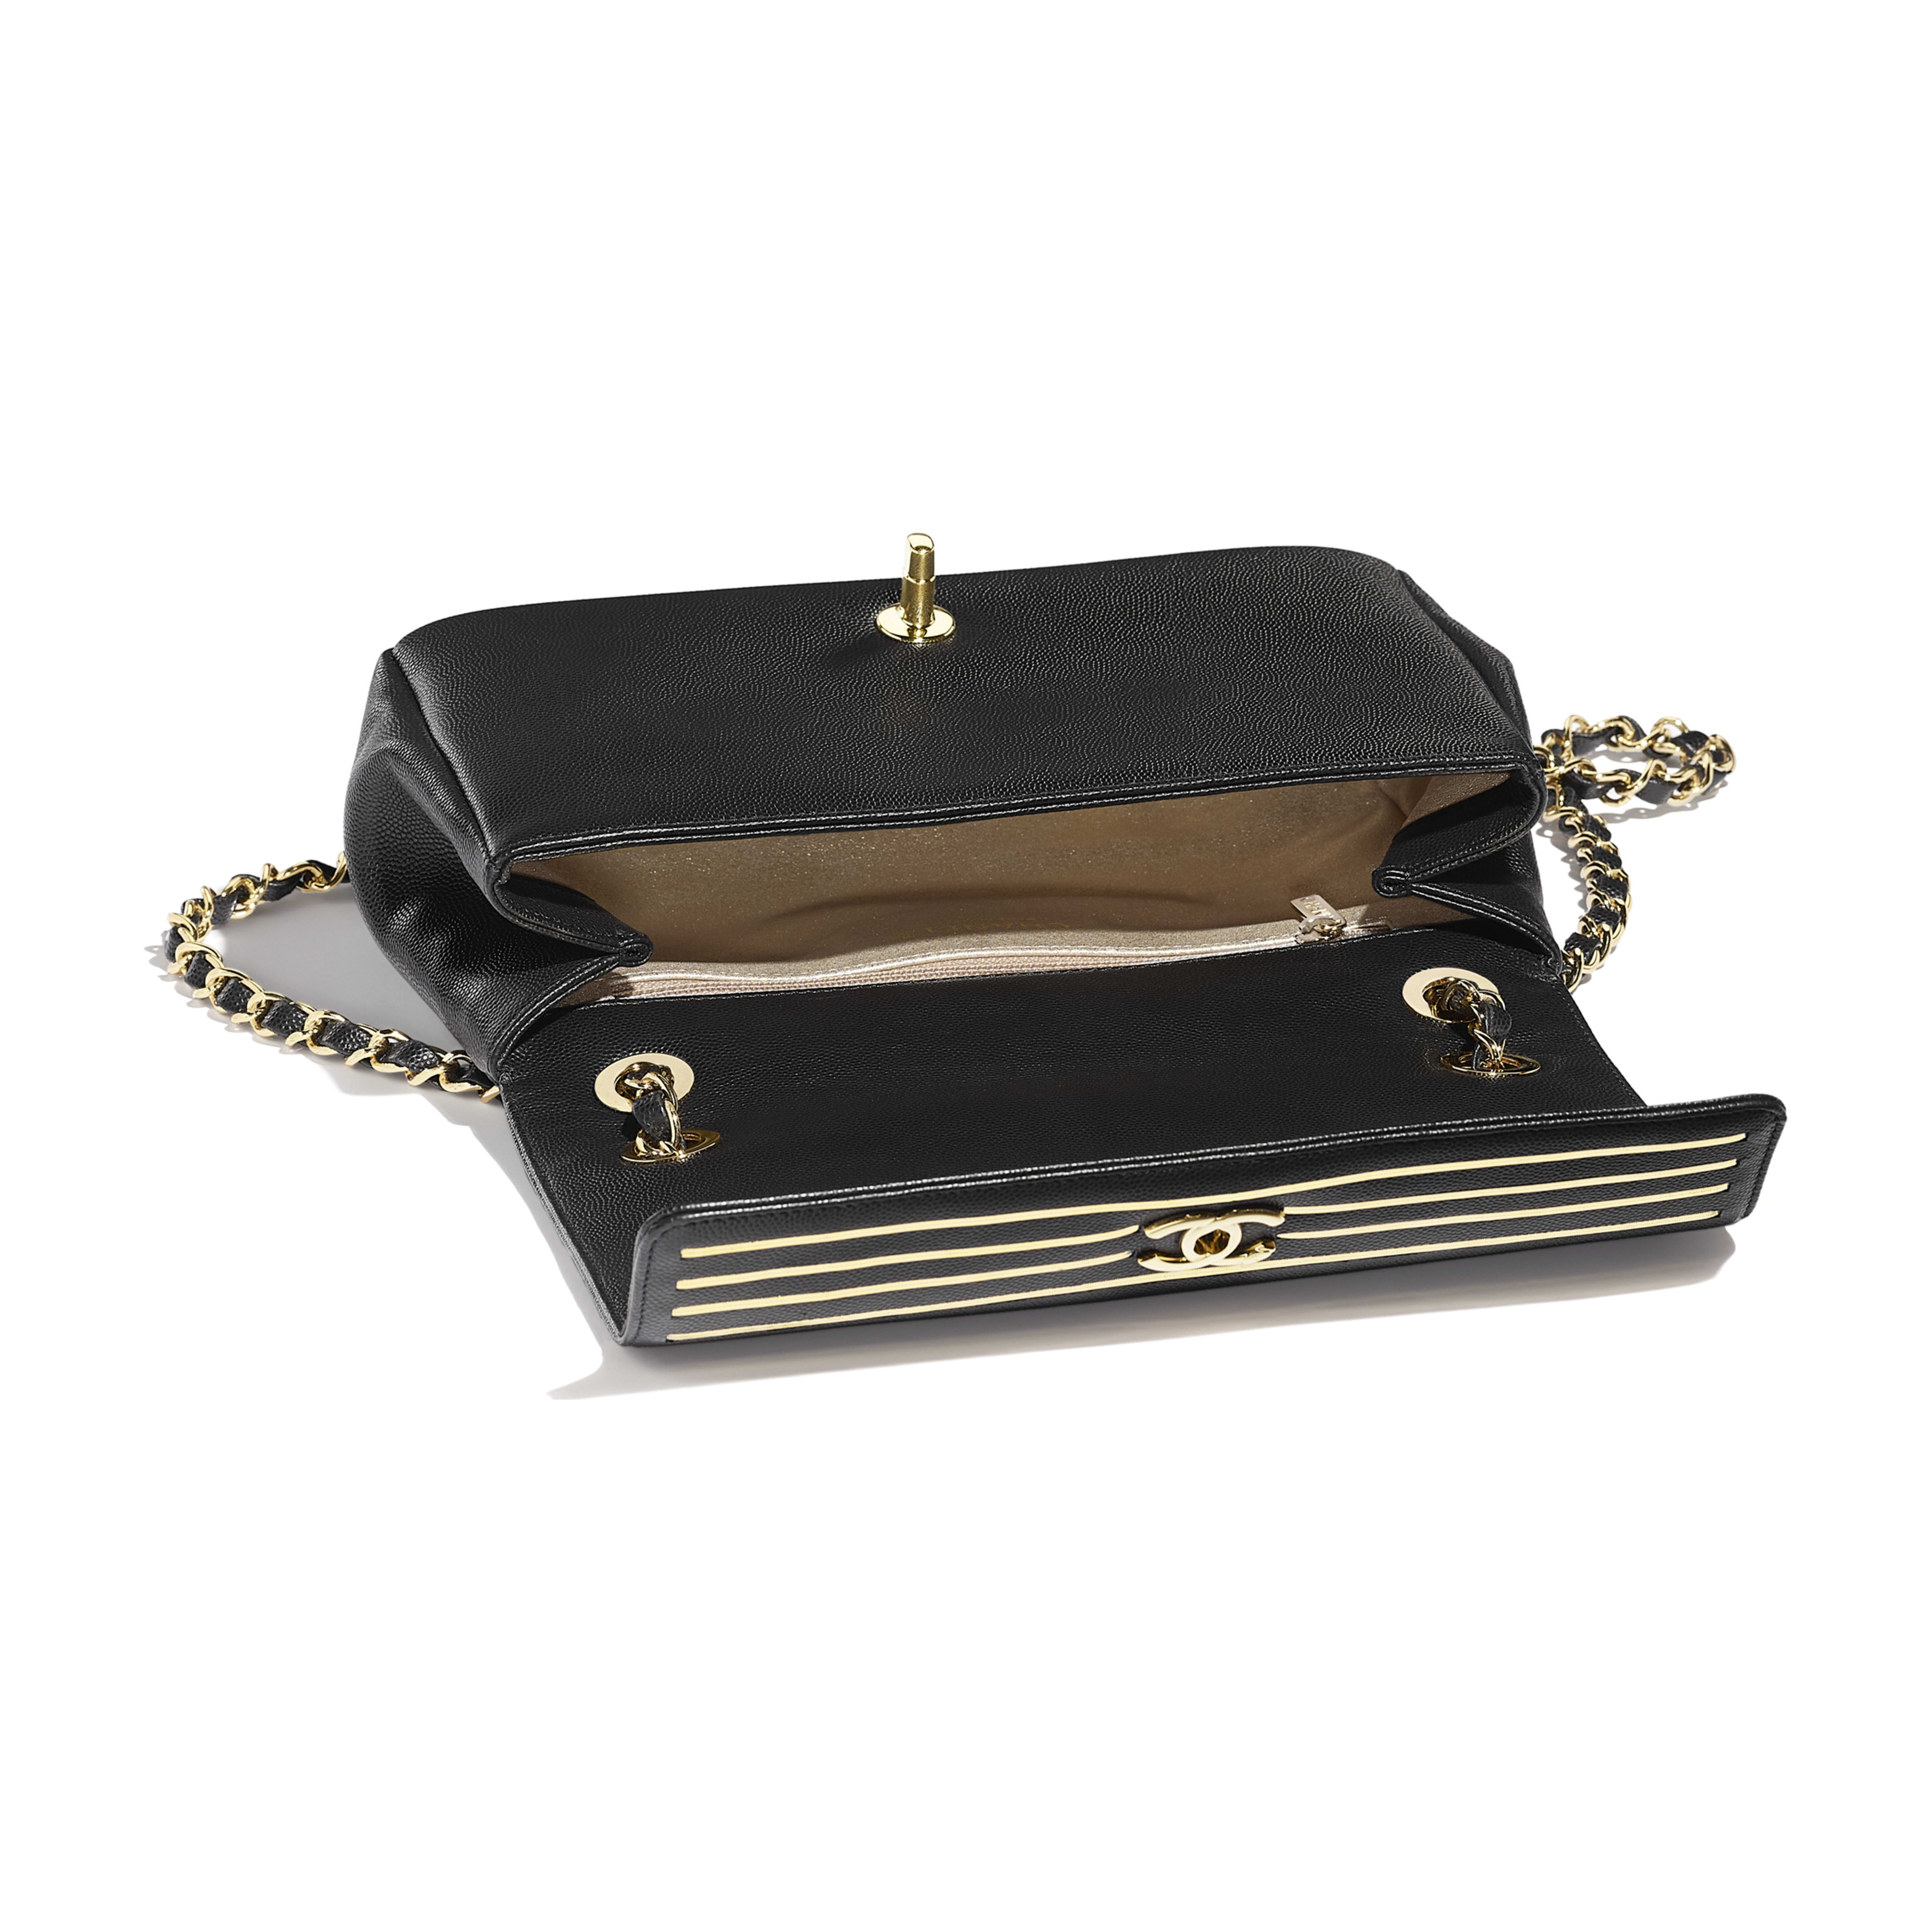 Flap Bag - Black - Embroidered Grained Calfskin & Gold-Tone Metal - Other view - see full sized version